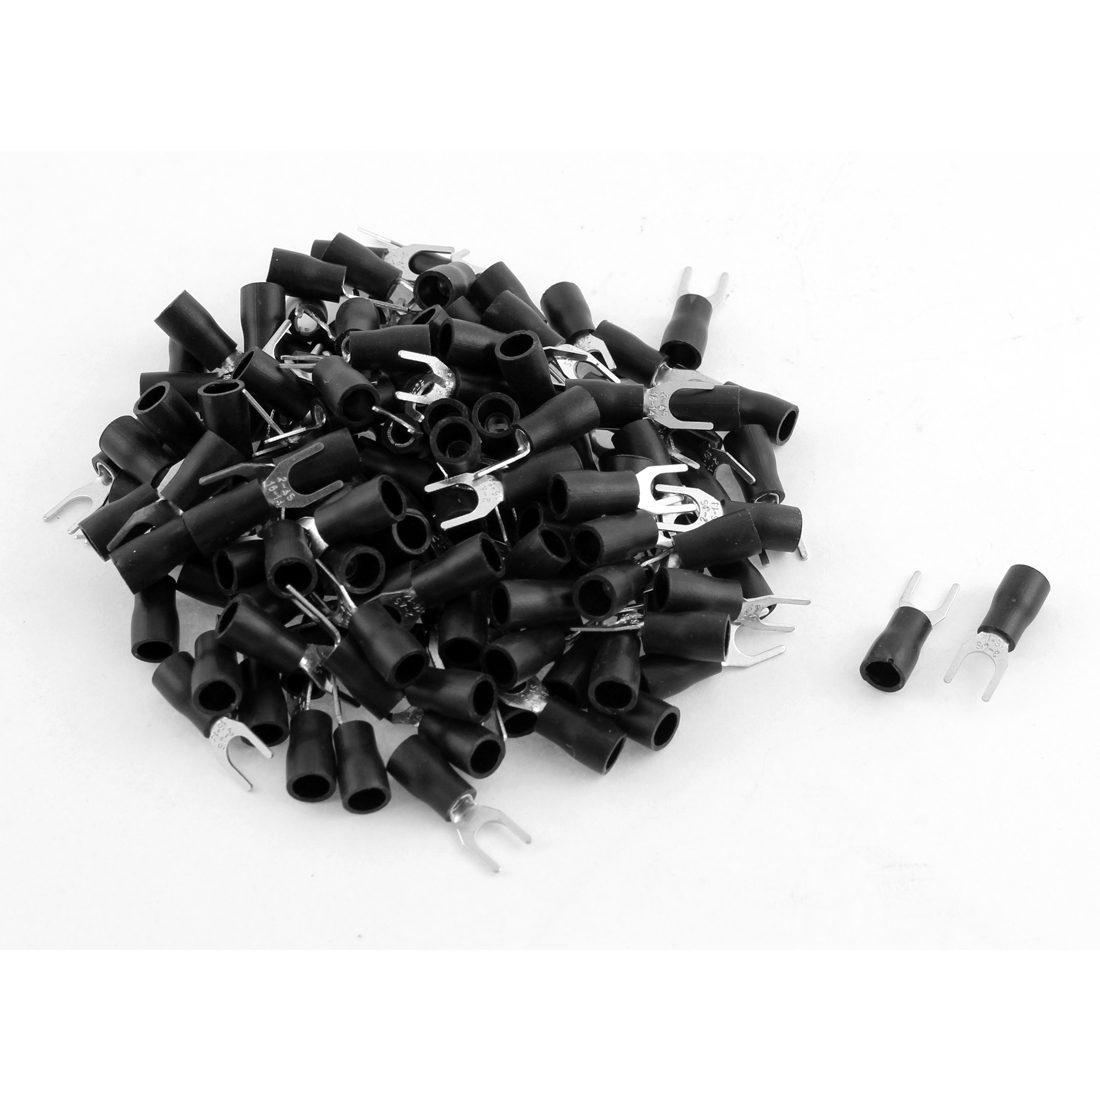 135Pcs SV2-4 Fork Type Black Insulated Spade Cable Terminals 16-14AWG